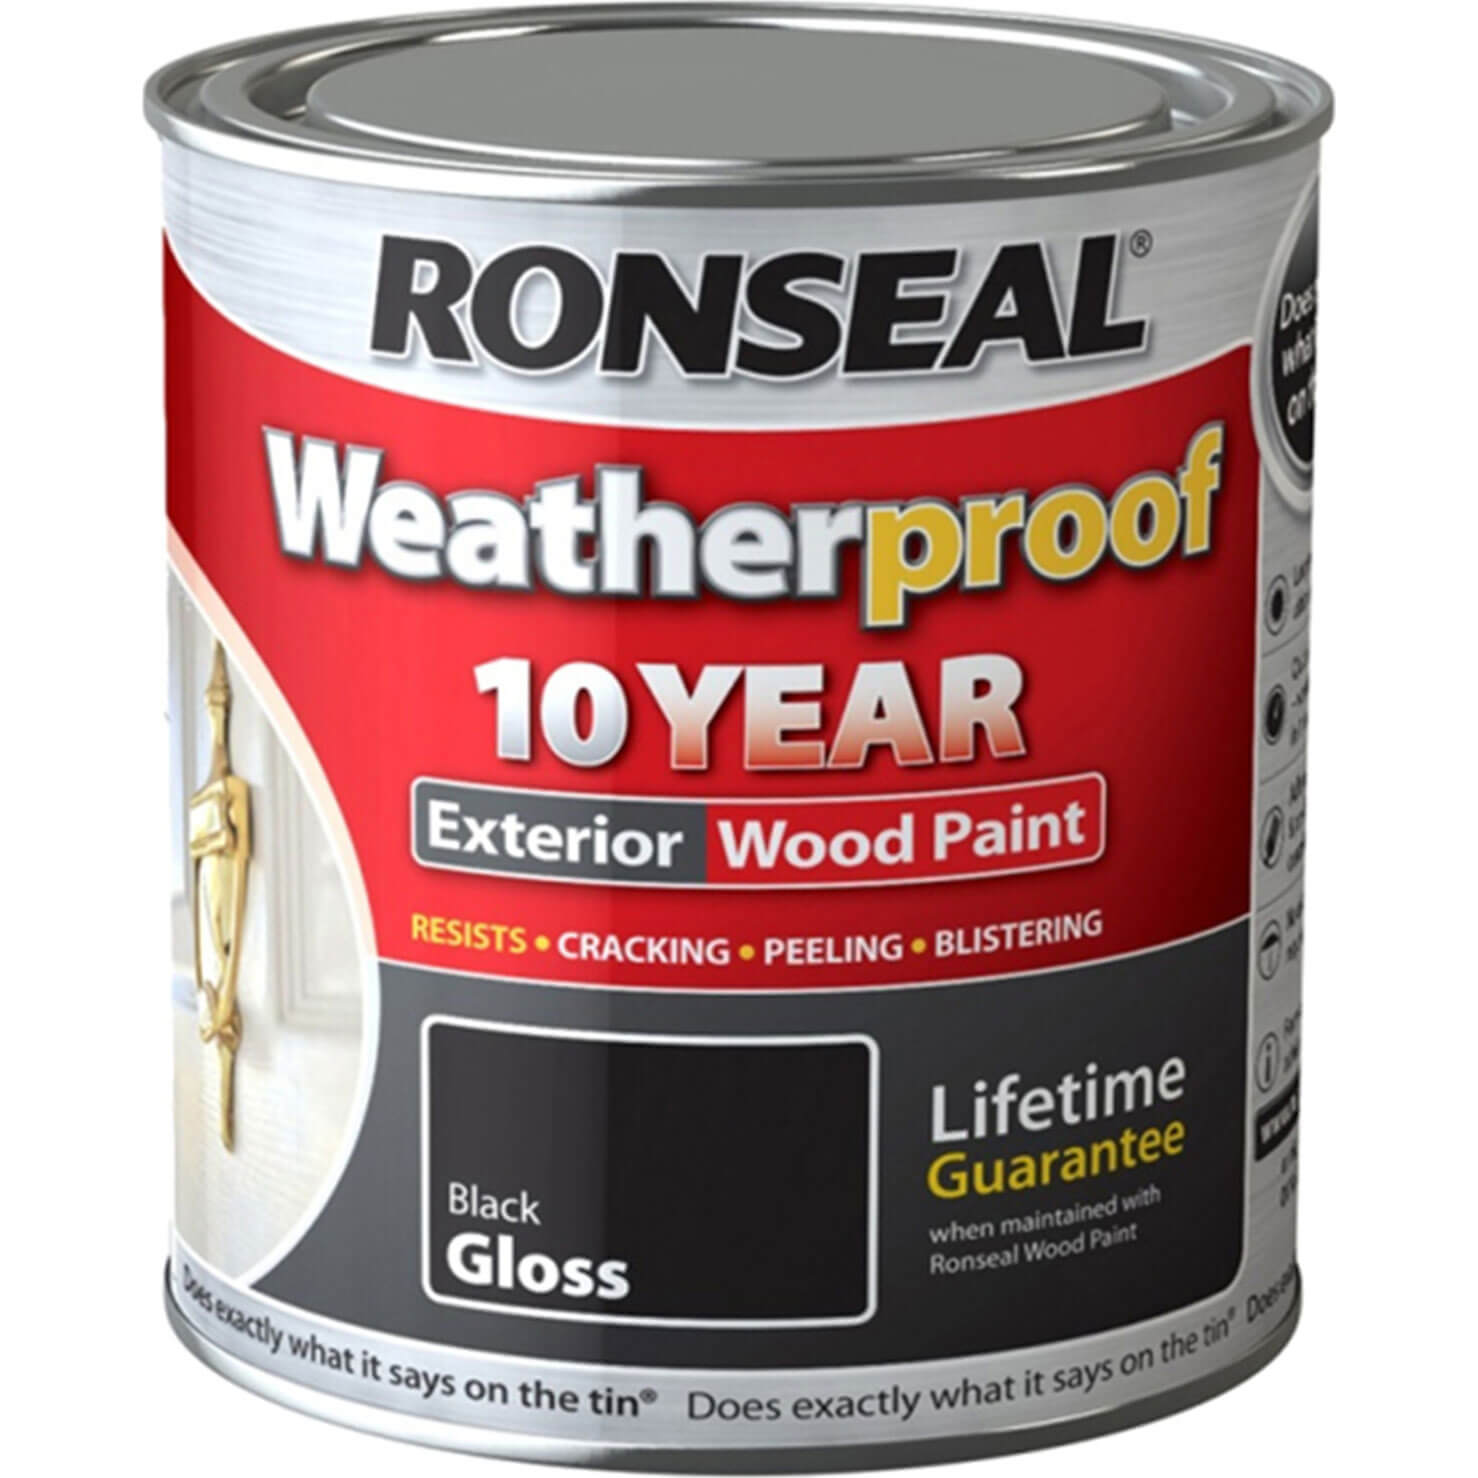 Ronseal 10 Year Weatherproof Wood Paint Muddy Brown 750ml